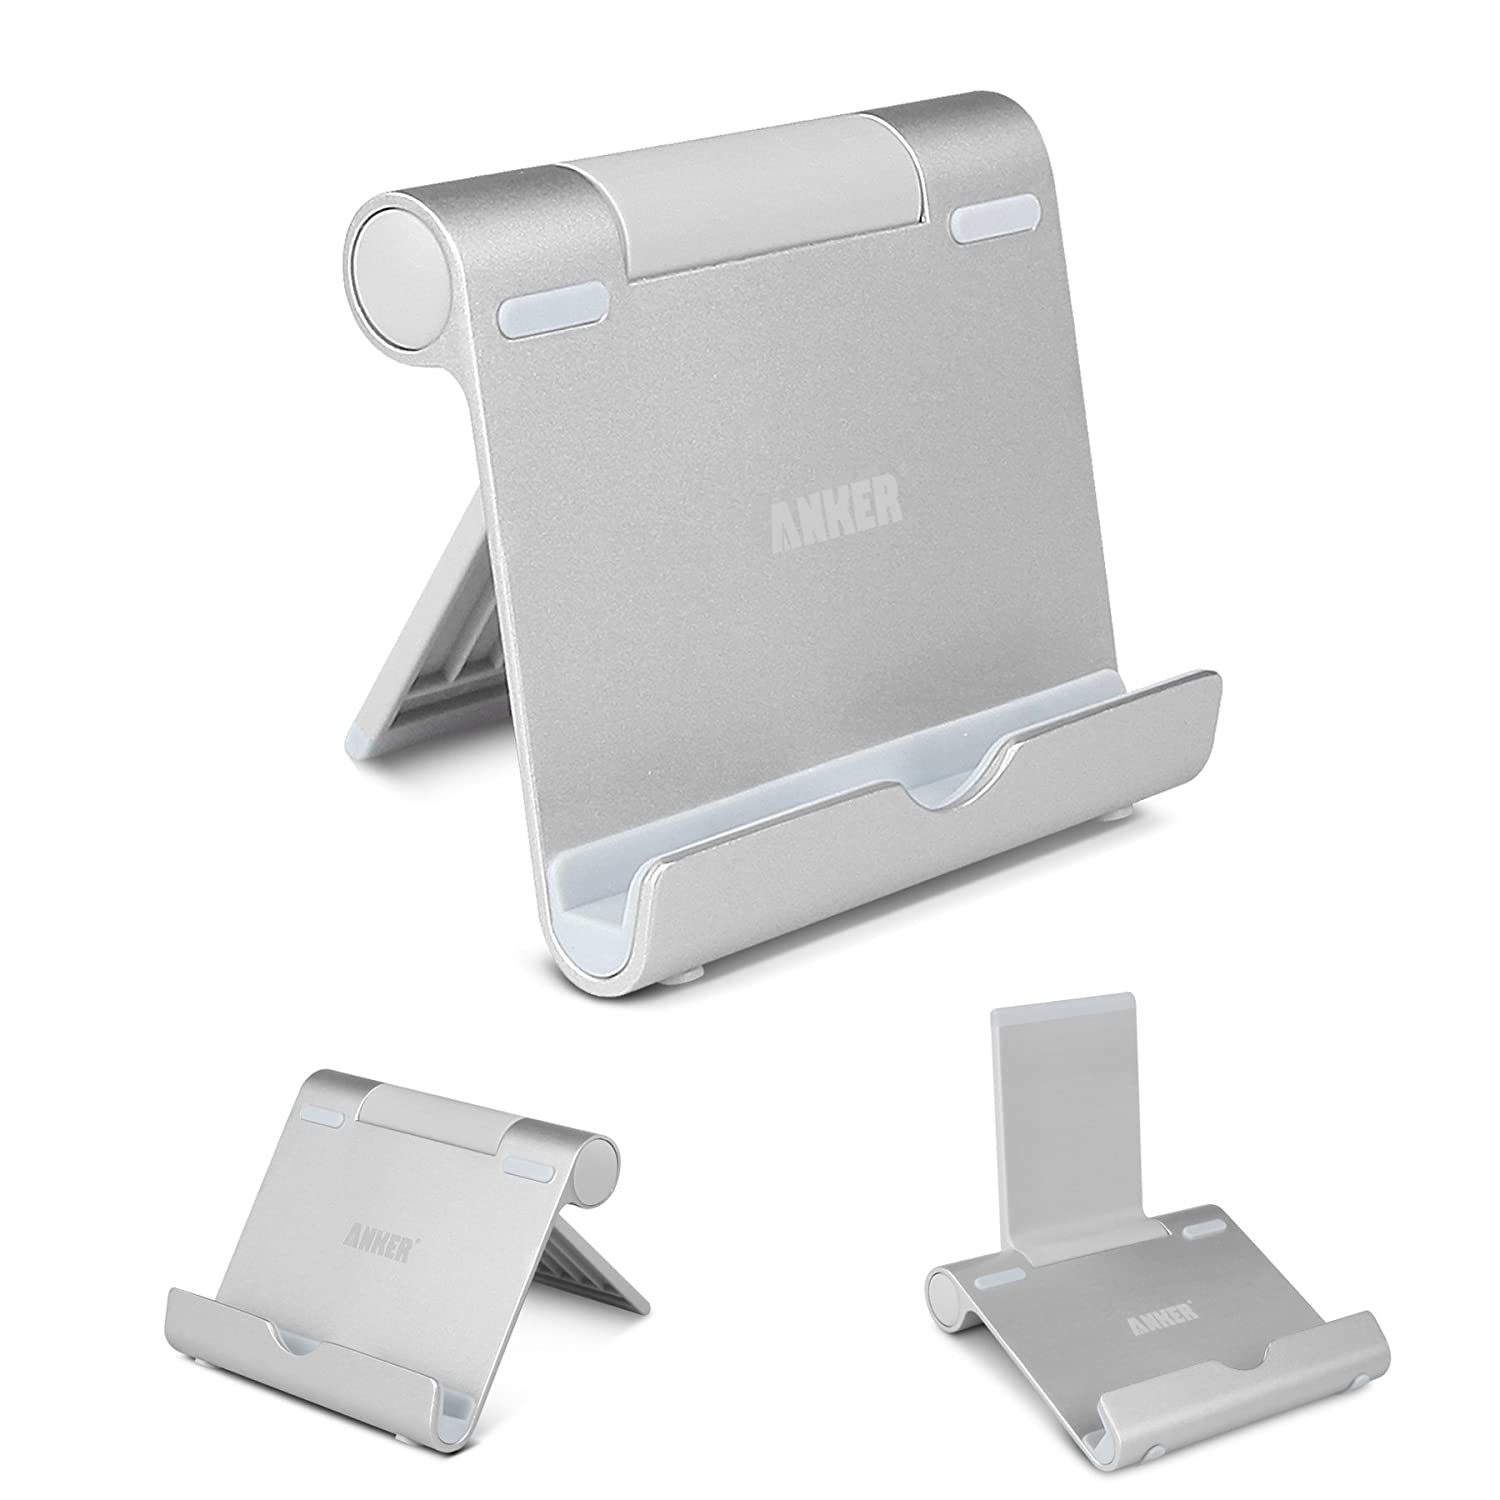 Anker Multi-Angle Portable Stand for 4 to 10-Inch Smartphones, E-Reader and Tablets - Silver